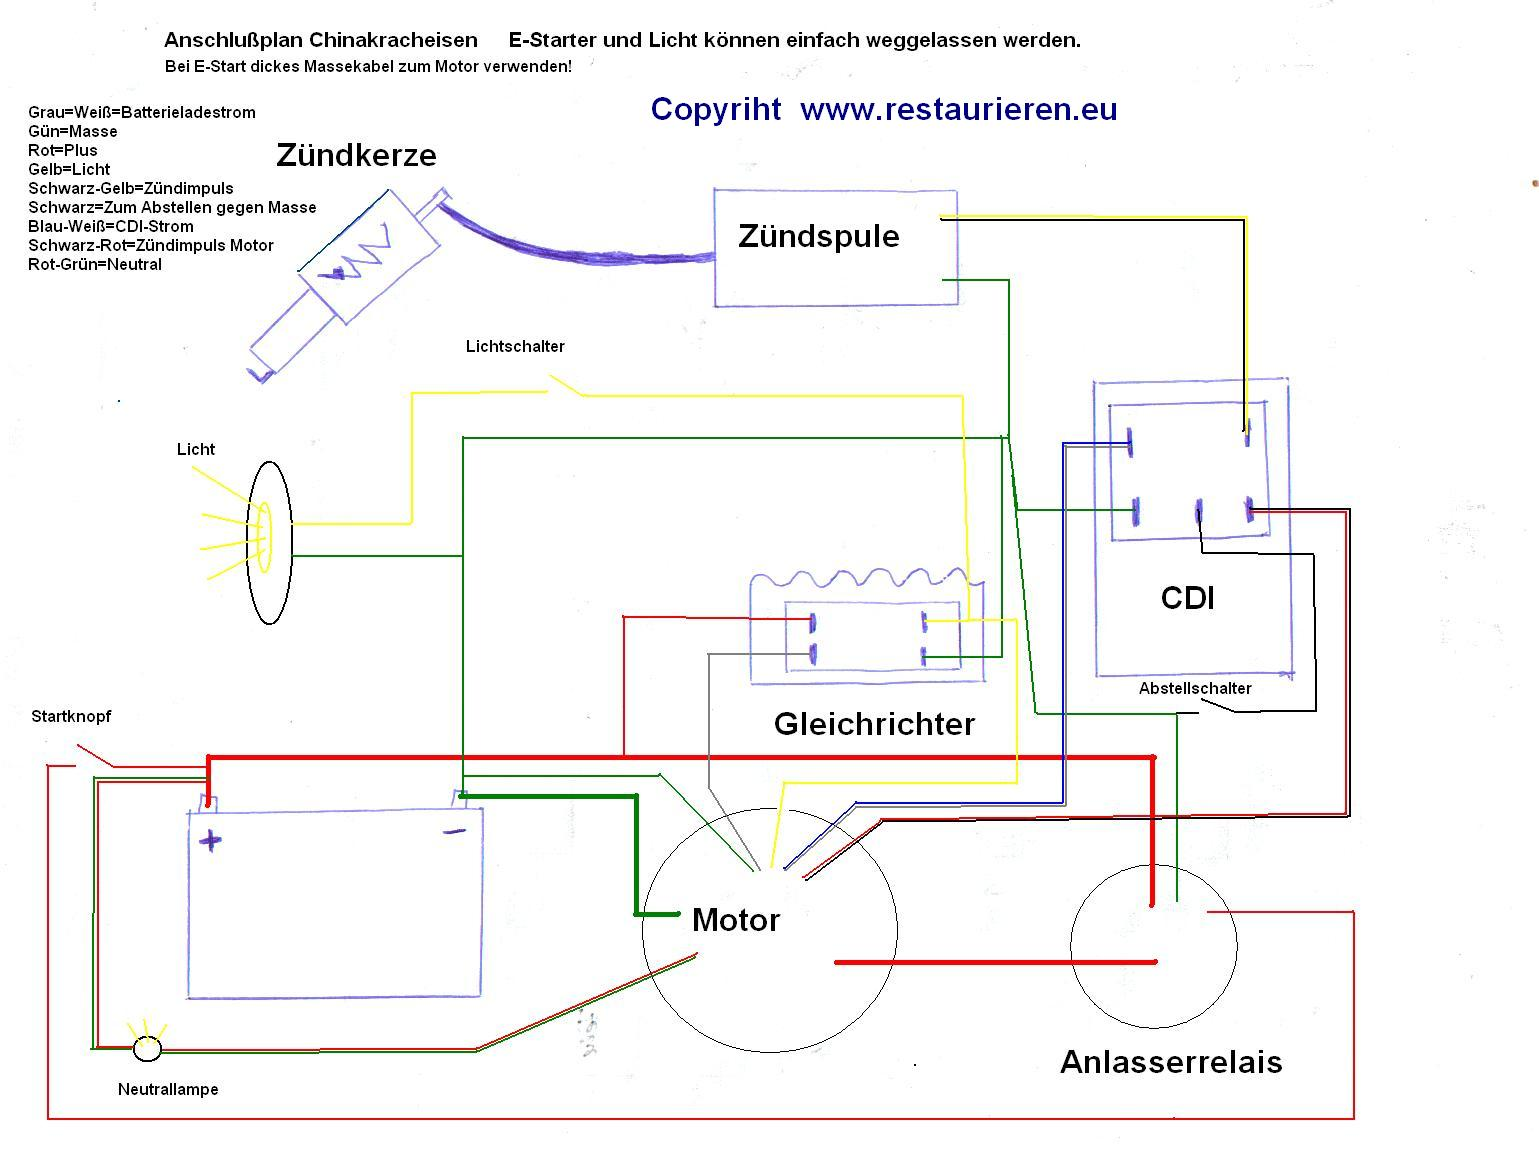 Magnificent Cb200 Wiring Diagram In Color Images - Electrical System ...